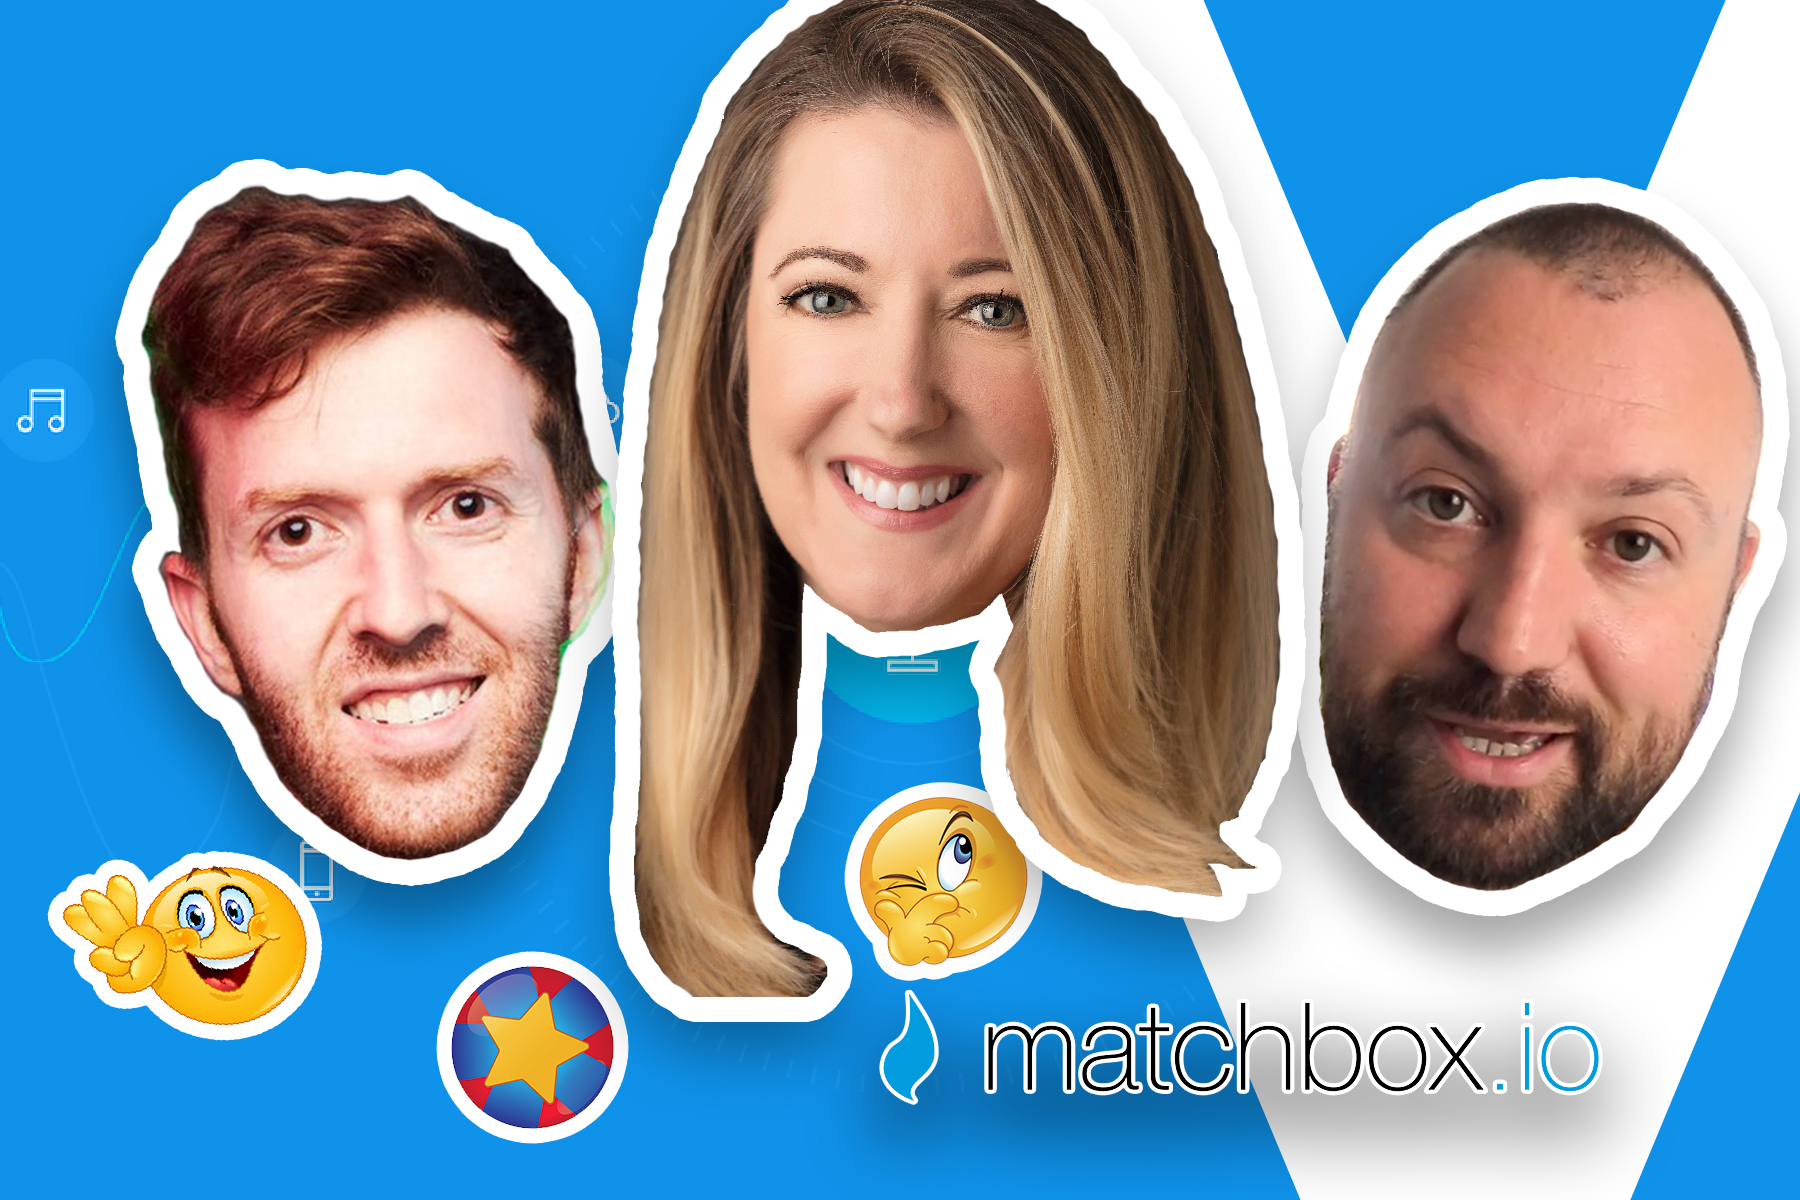 Sarah Andrew Wilson of Matchbox.io on the VUX World podcast with Kane Simms and Dustin Coates